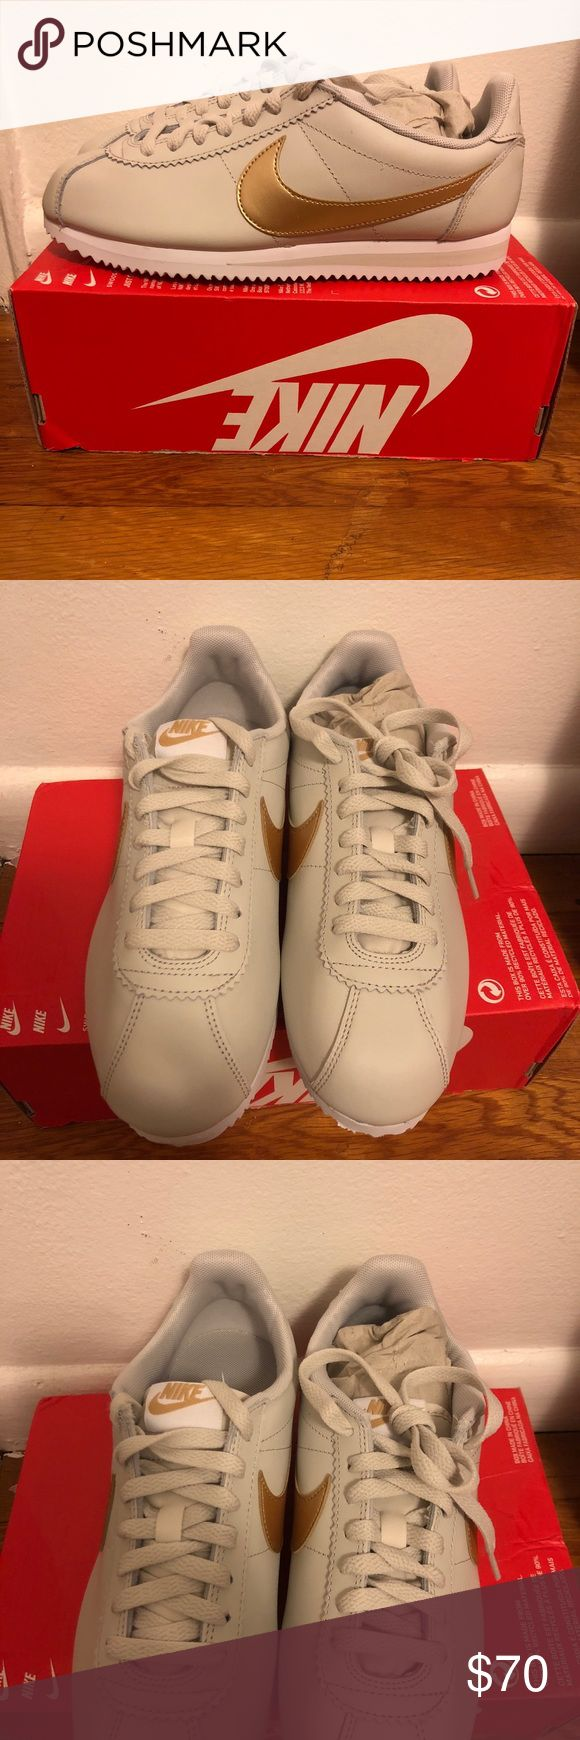 LOWEST Womens nike classic cortez leather size 8.5 New. Never worn. Size 8.5 . Box with no box top. Color is LIGHT BLUE/METALLIC GOLD WHITE Nike Shoes Sneakers